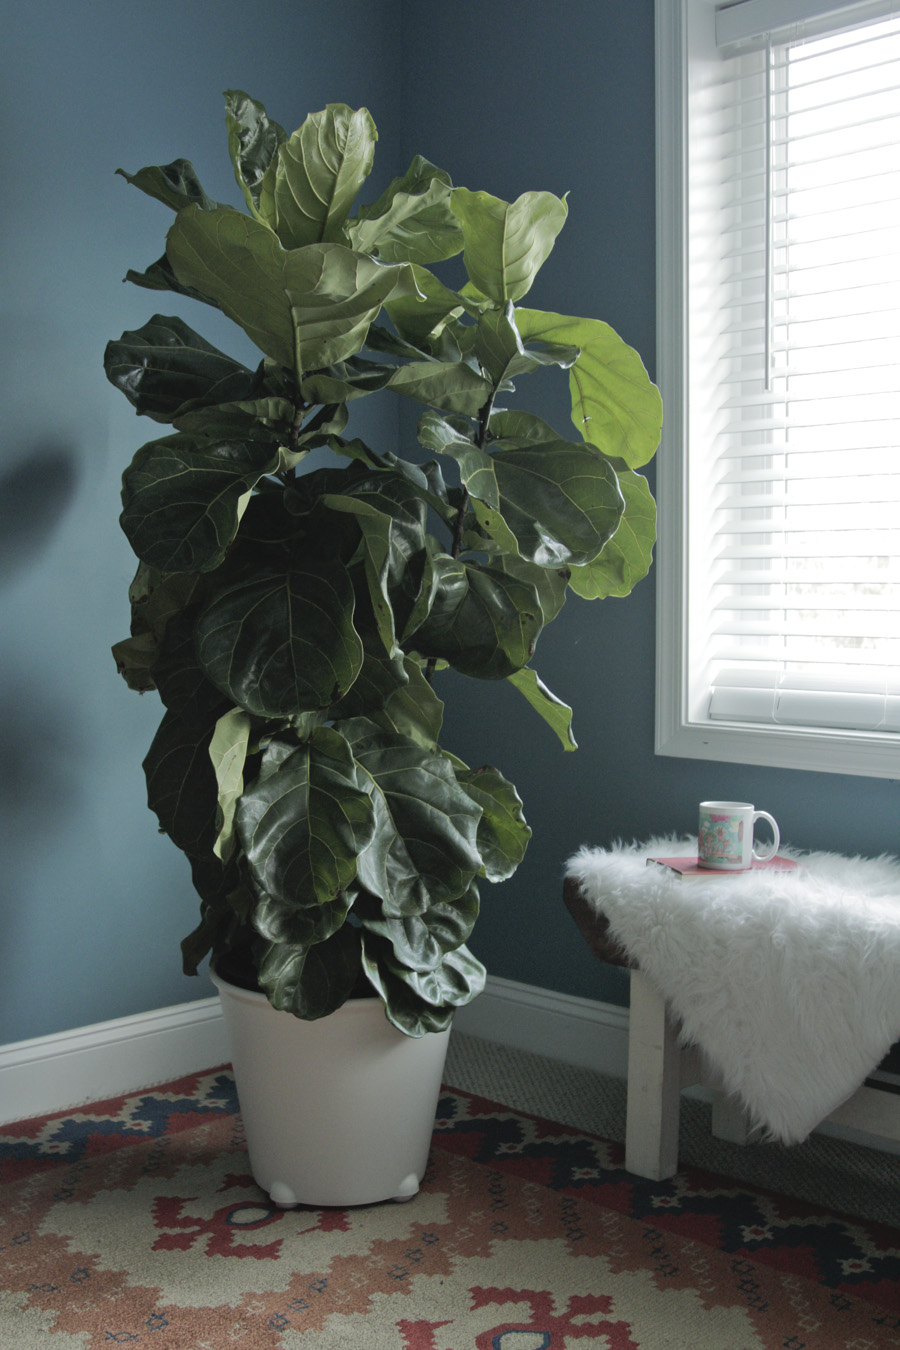 Fiddle leaf fig sunbathing in the guest room